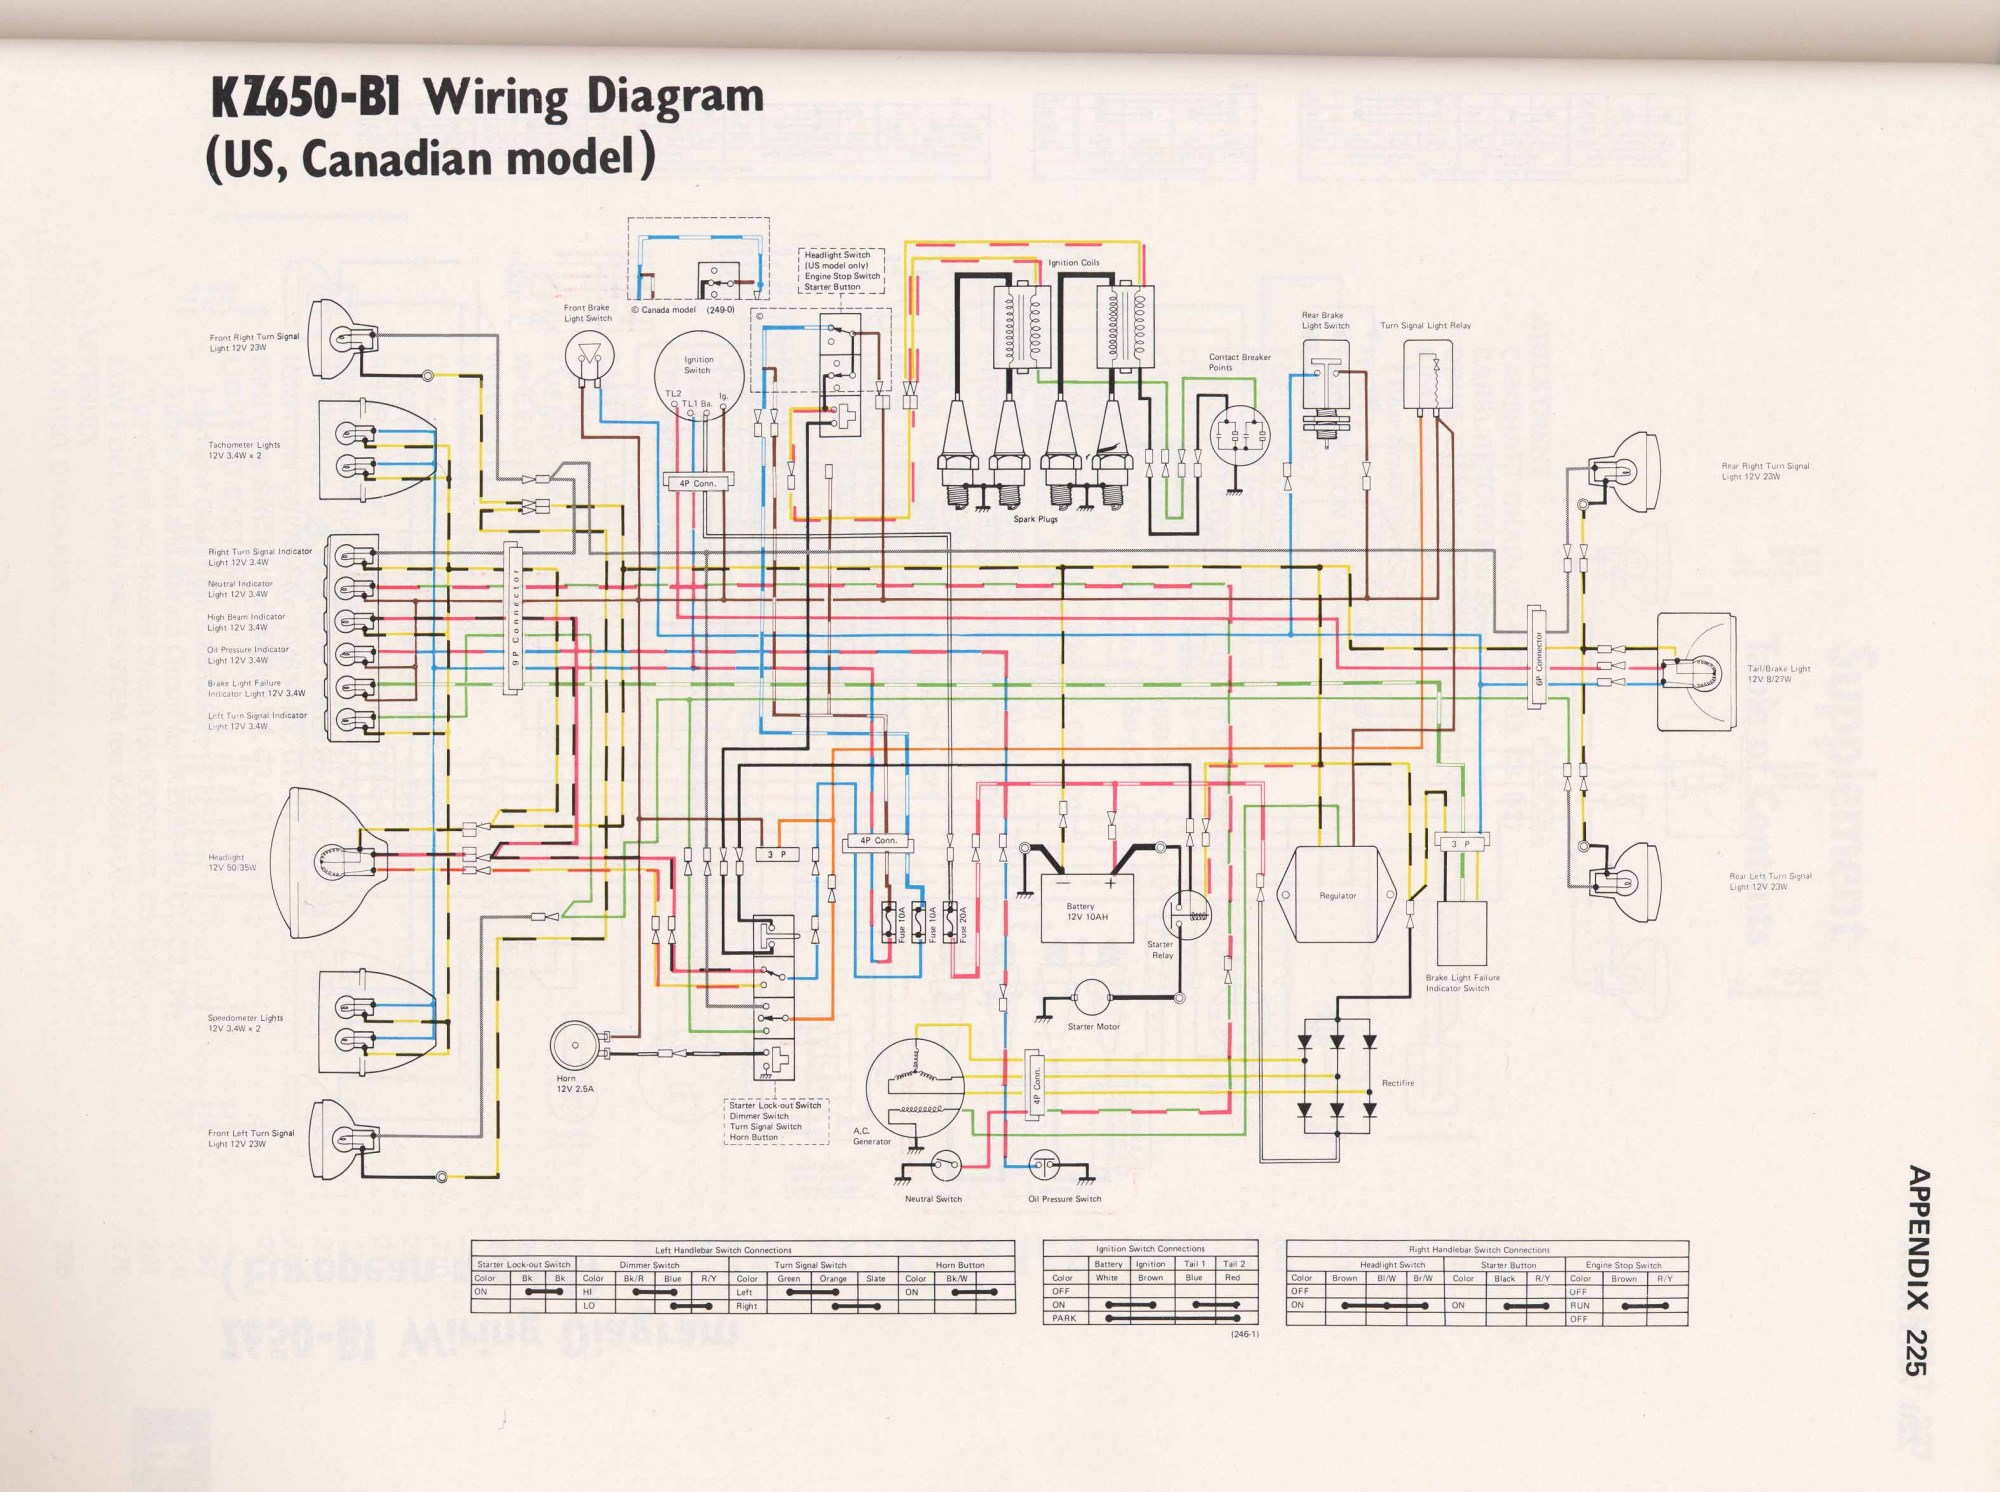 hight resolution of kz650 info wiring diagrams rh diagrams kz650 info kz550 wiring diagram kawasaki wiring diagrams